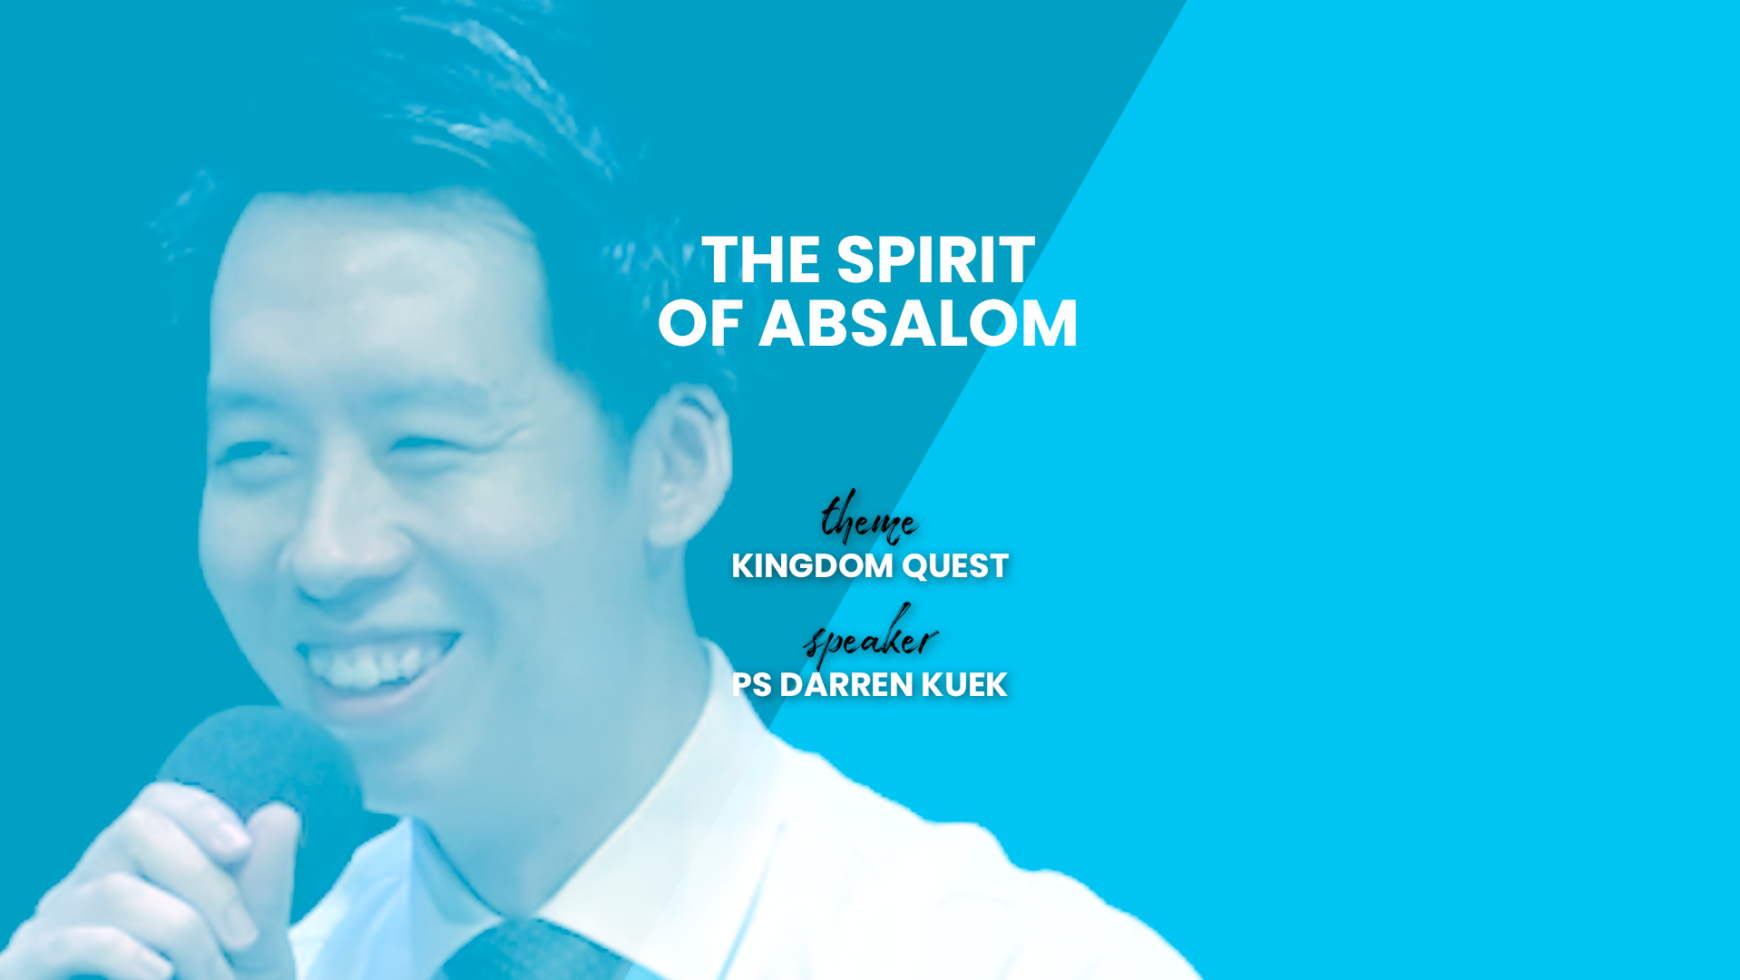 The Spirit of Absalom